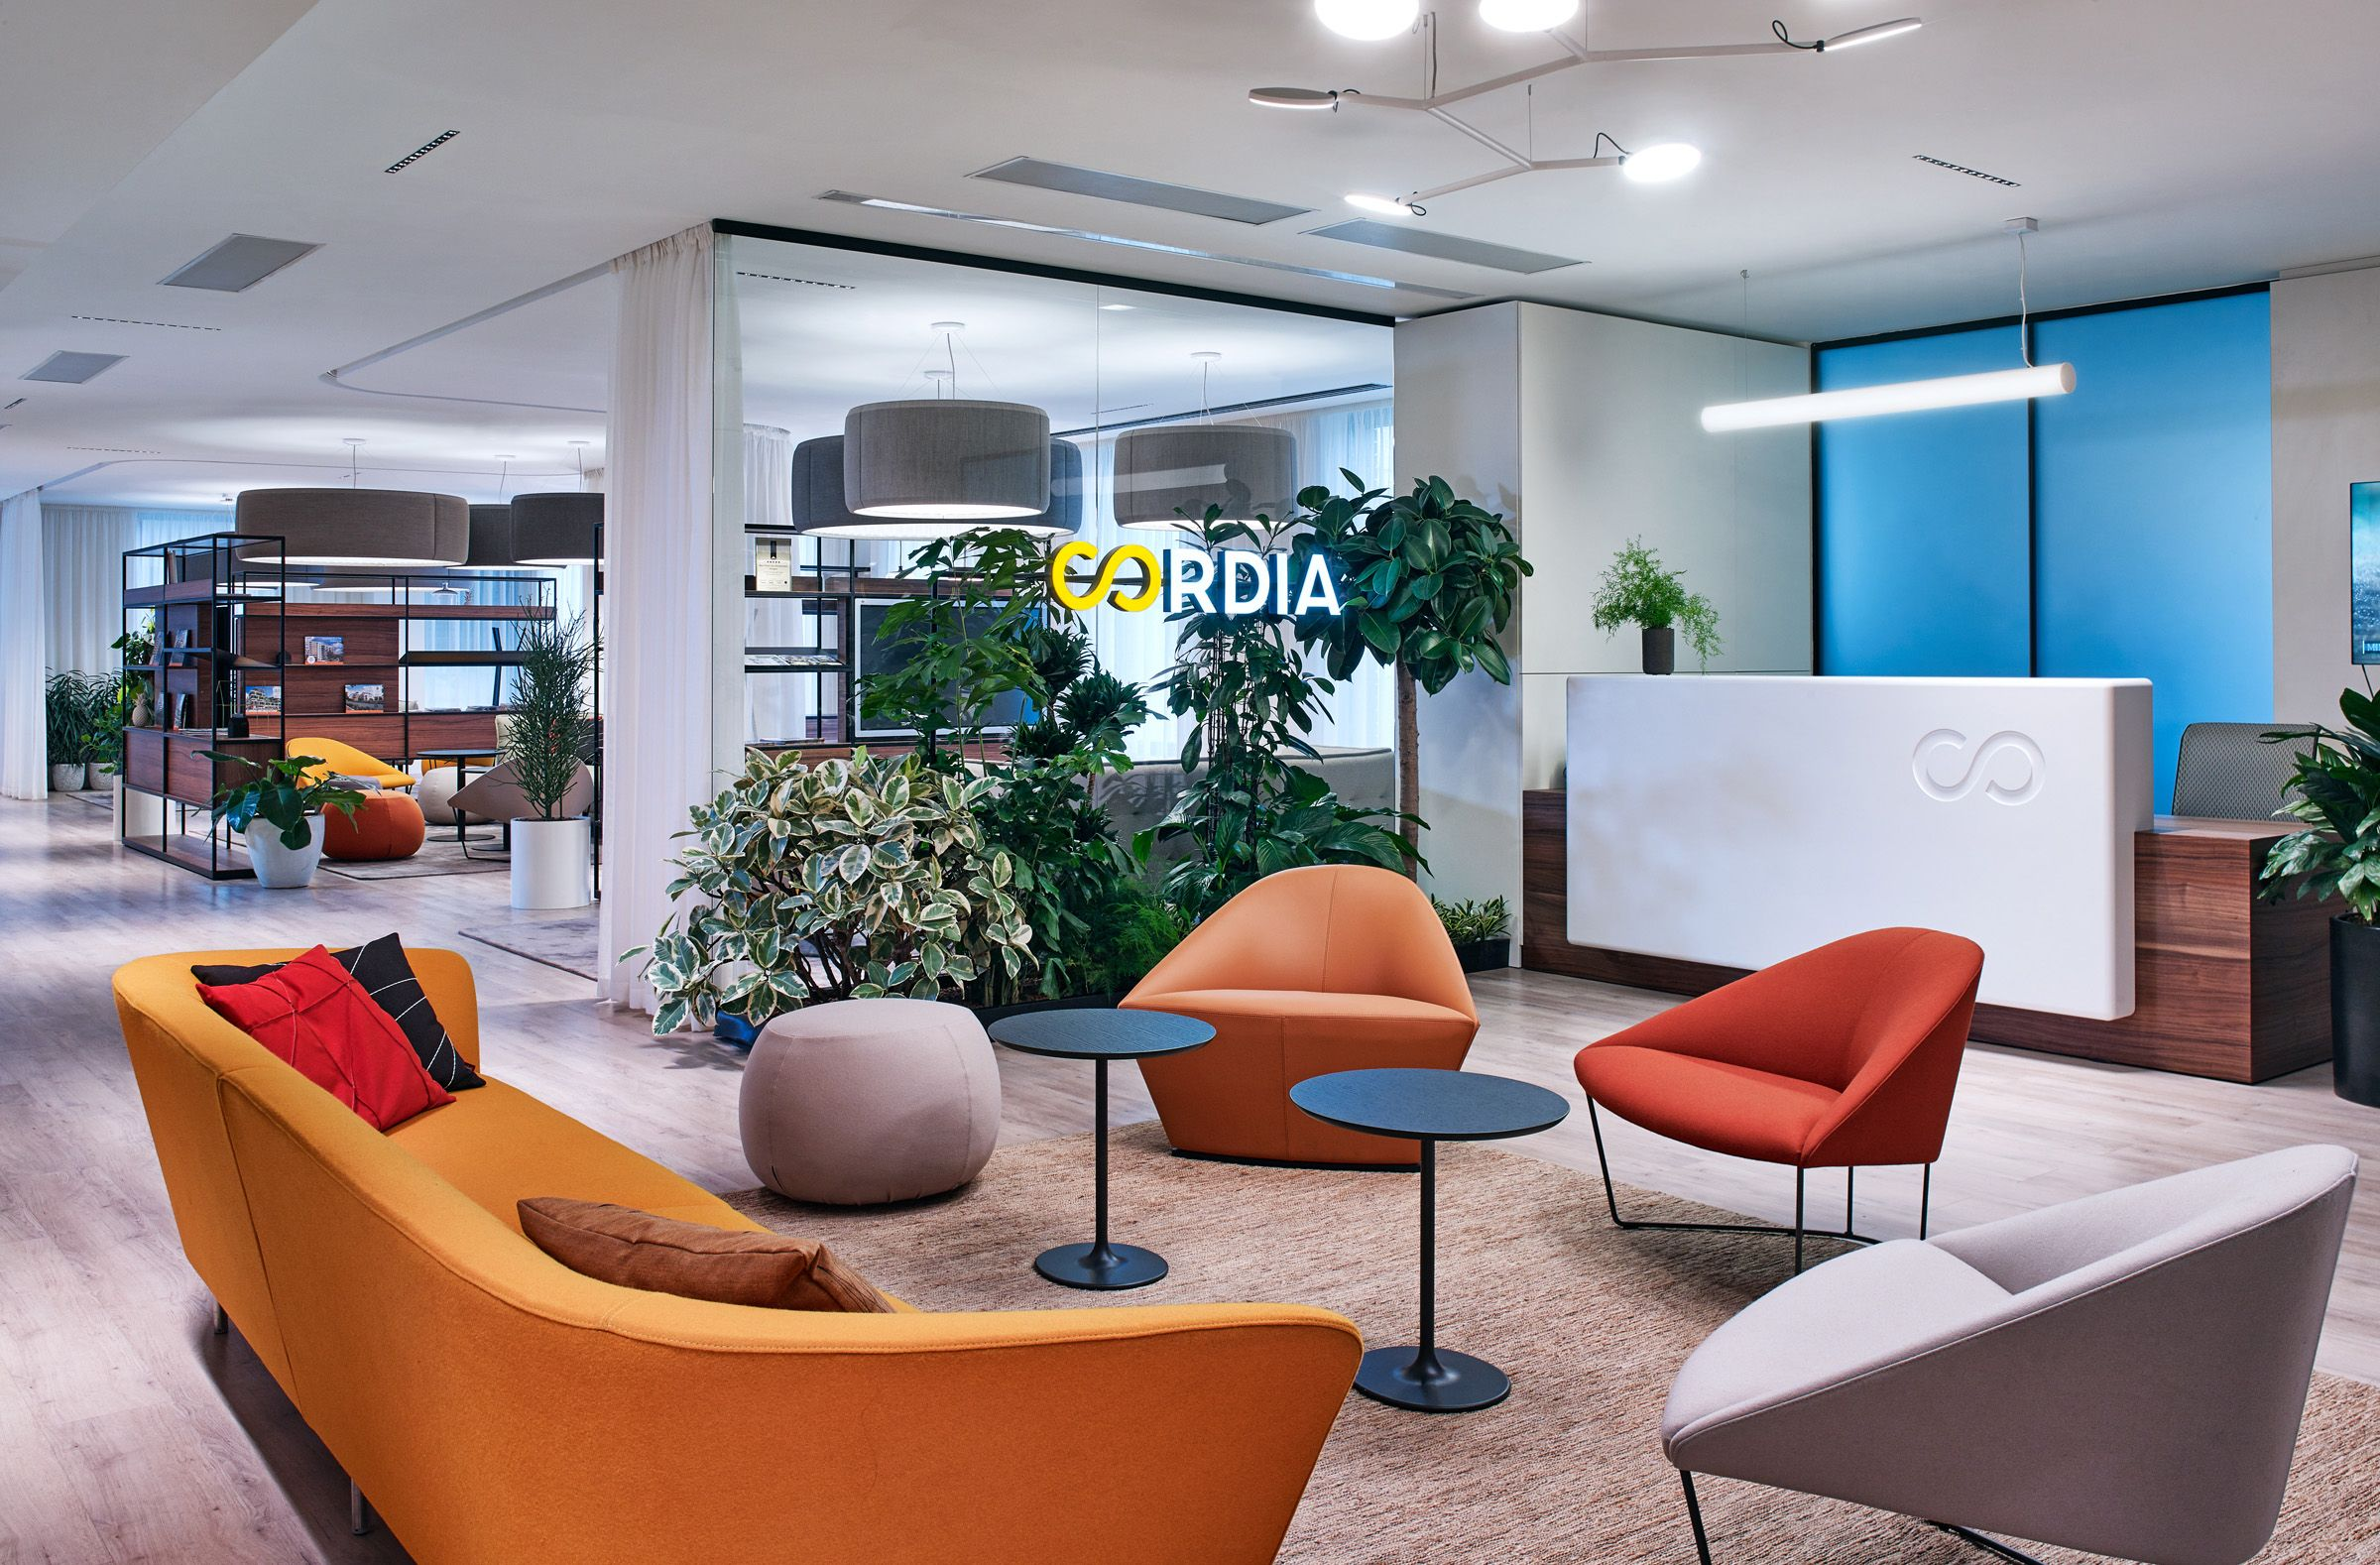 A Look Inside Cordia S Marketing Office In Budapest En 2020 Decoracion De Unas Hoteles Oficinas